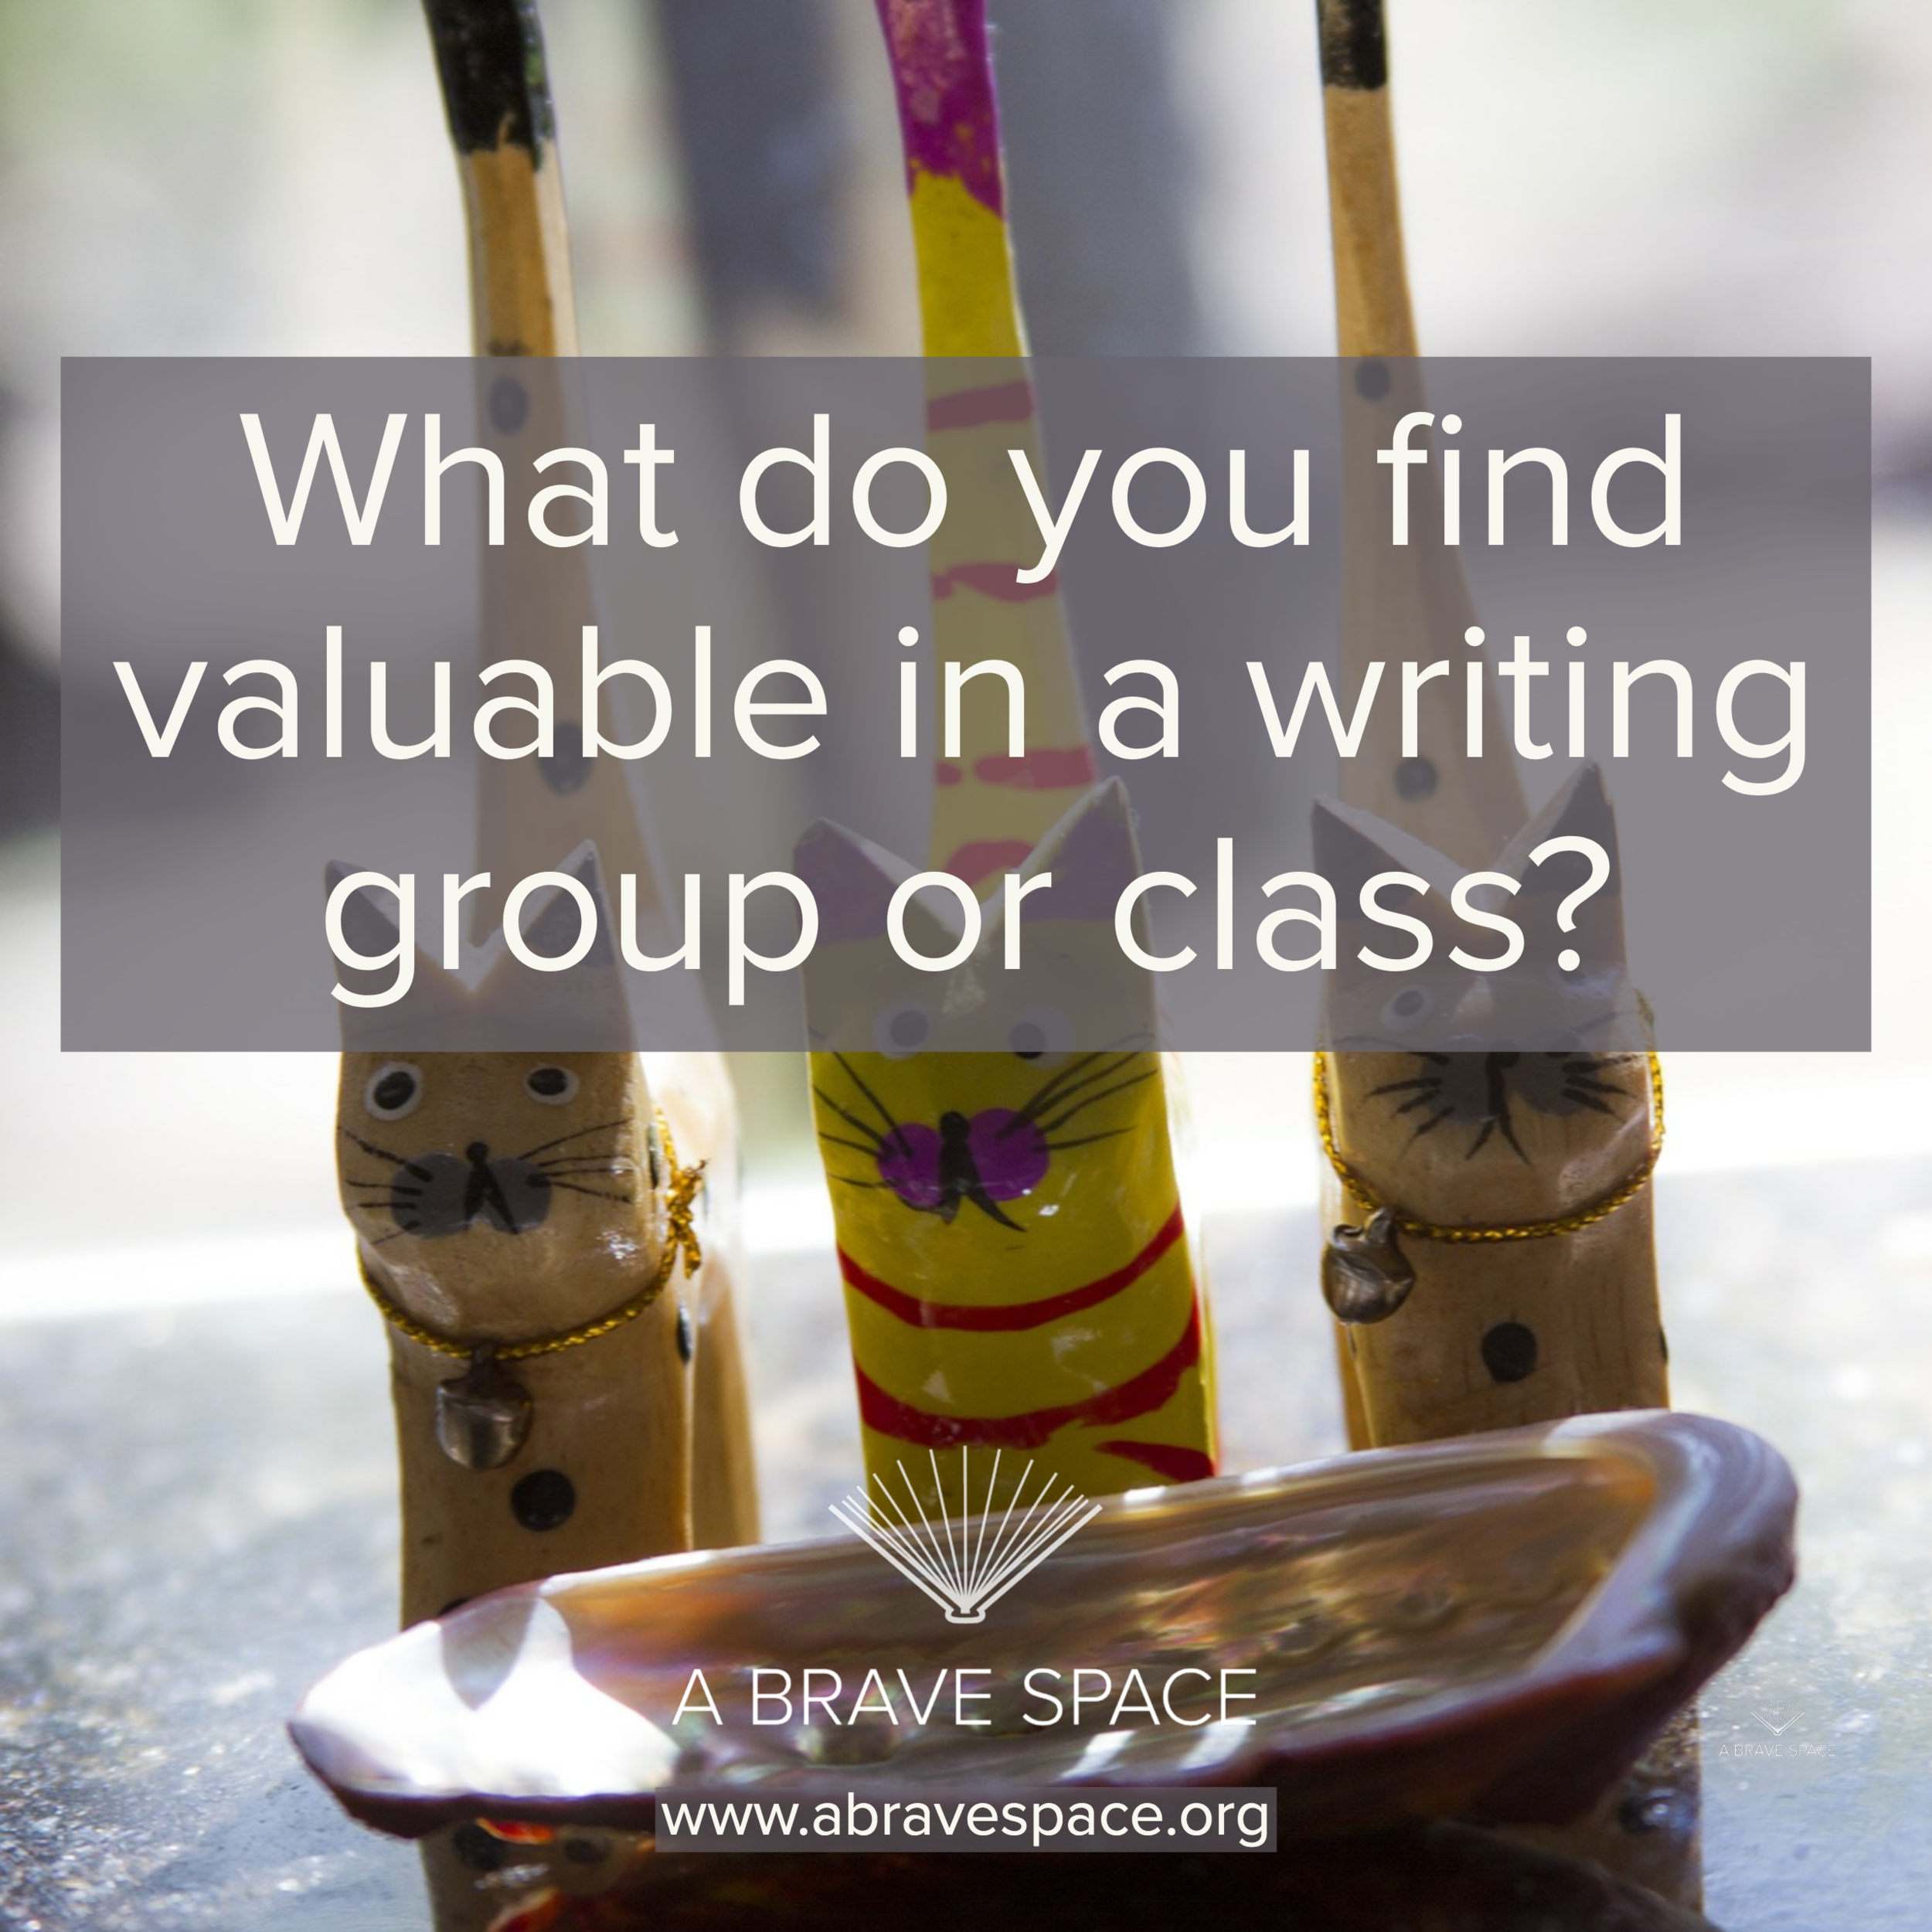 As I continue putting together new writing groups and classes, I'd love to hear from all of you!  What do you find most valuable in a writing group/class?  What do you look for in a writing group/class?  What topics are you interested in learning about?  What topics are important to you right now?